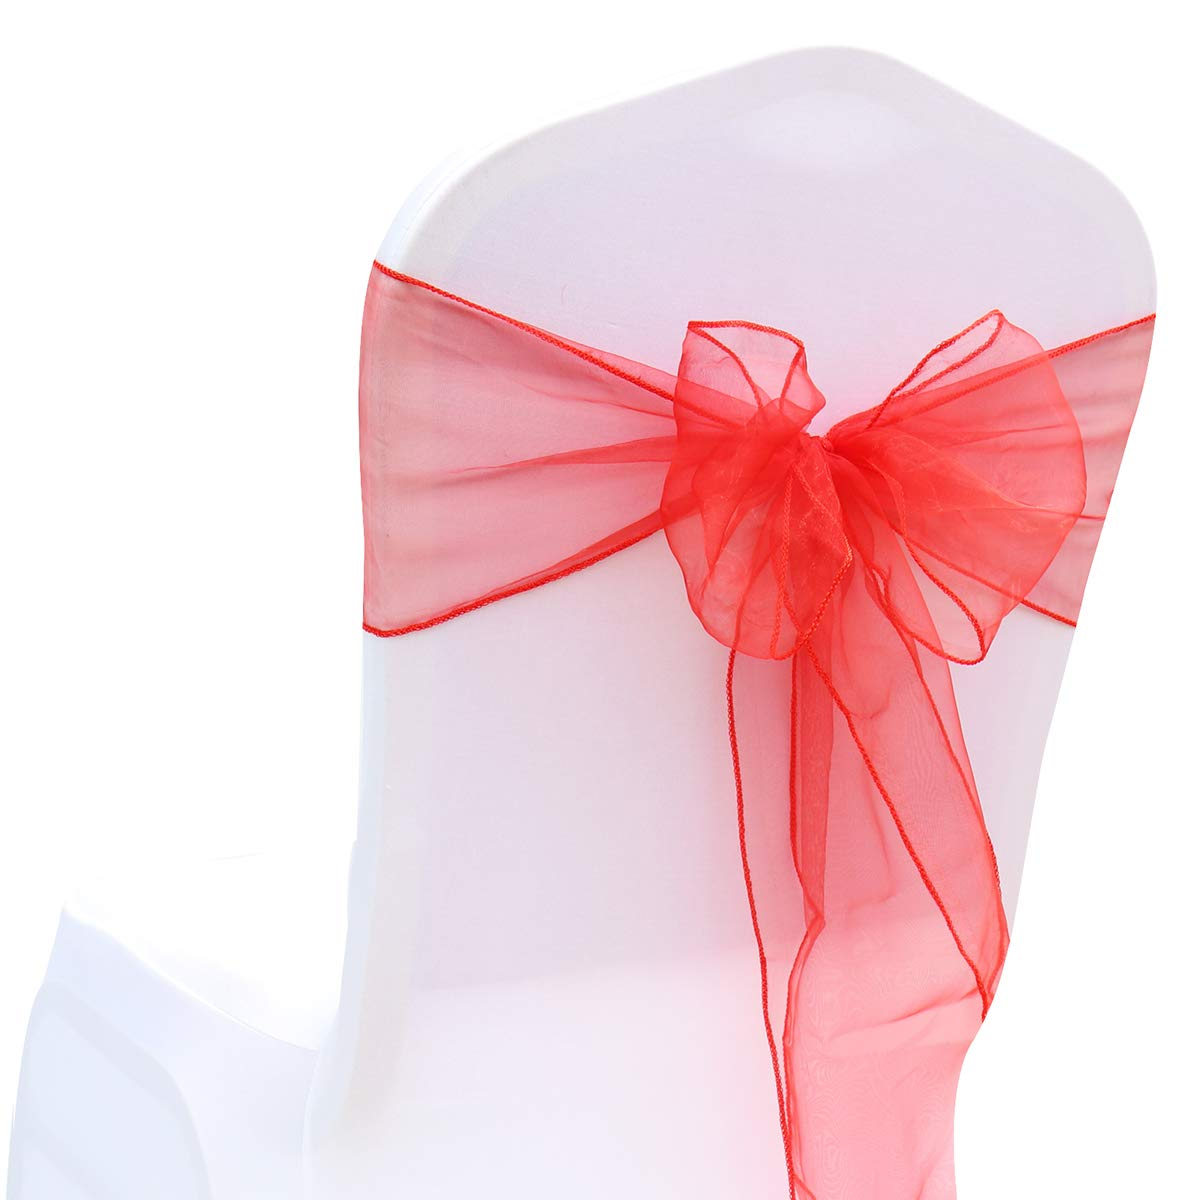 BIT.FLY 50 Pcs Organza Chair Sashes for Wedding Decoration Banquet Party Event Supplies Chair Bows Ties Chair Cover Bands - Red